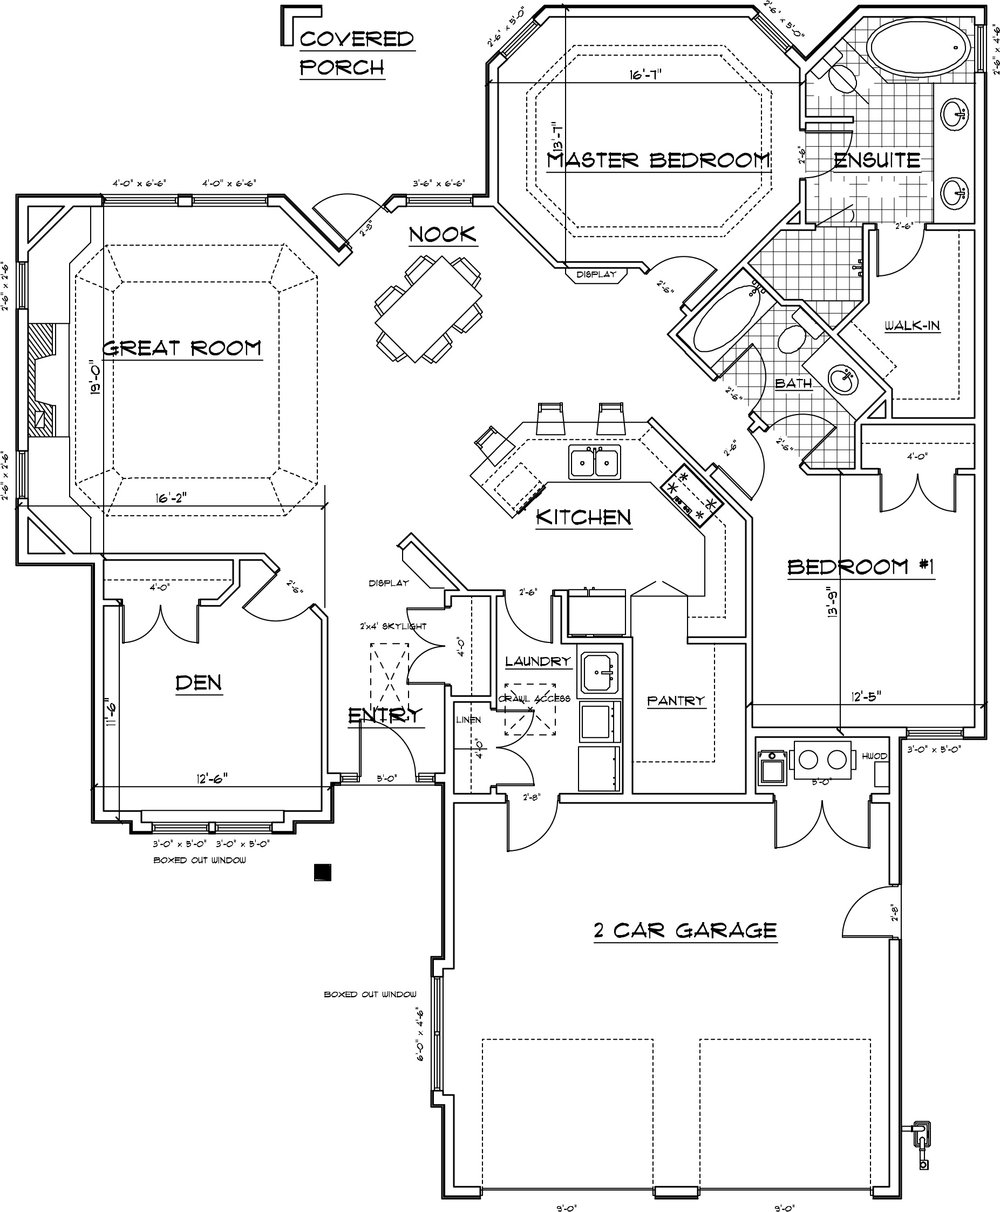 Lot 27 Floorplan.jpg